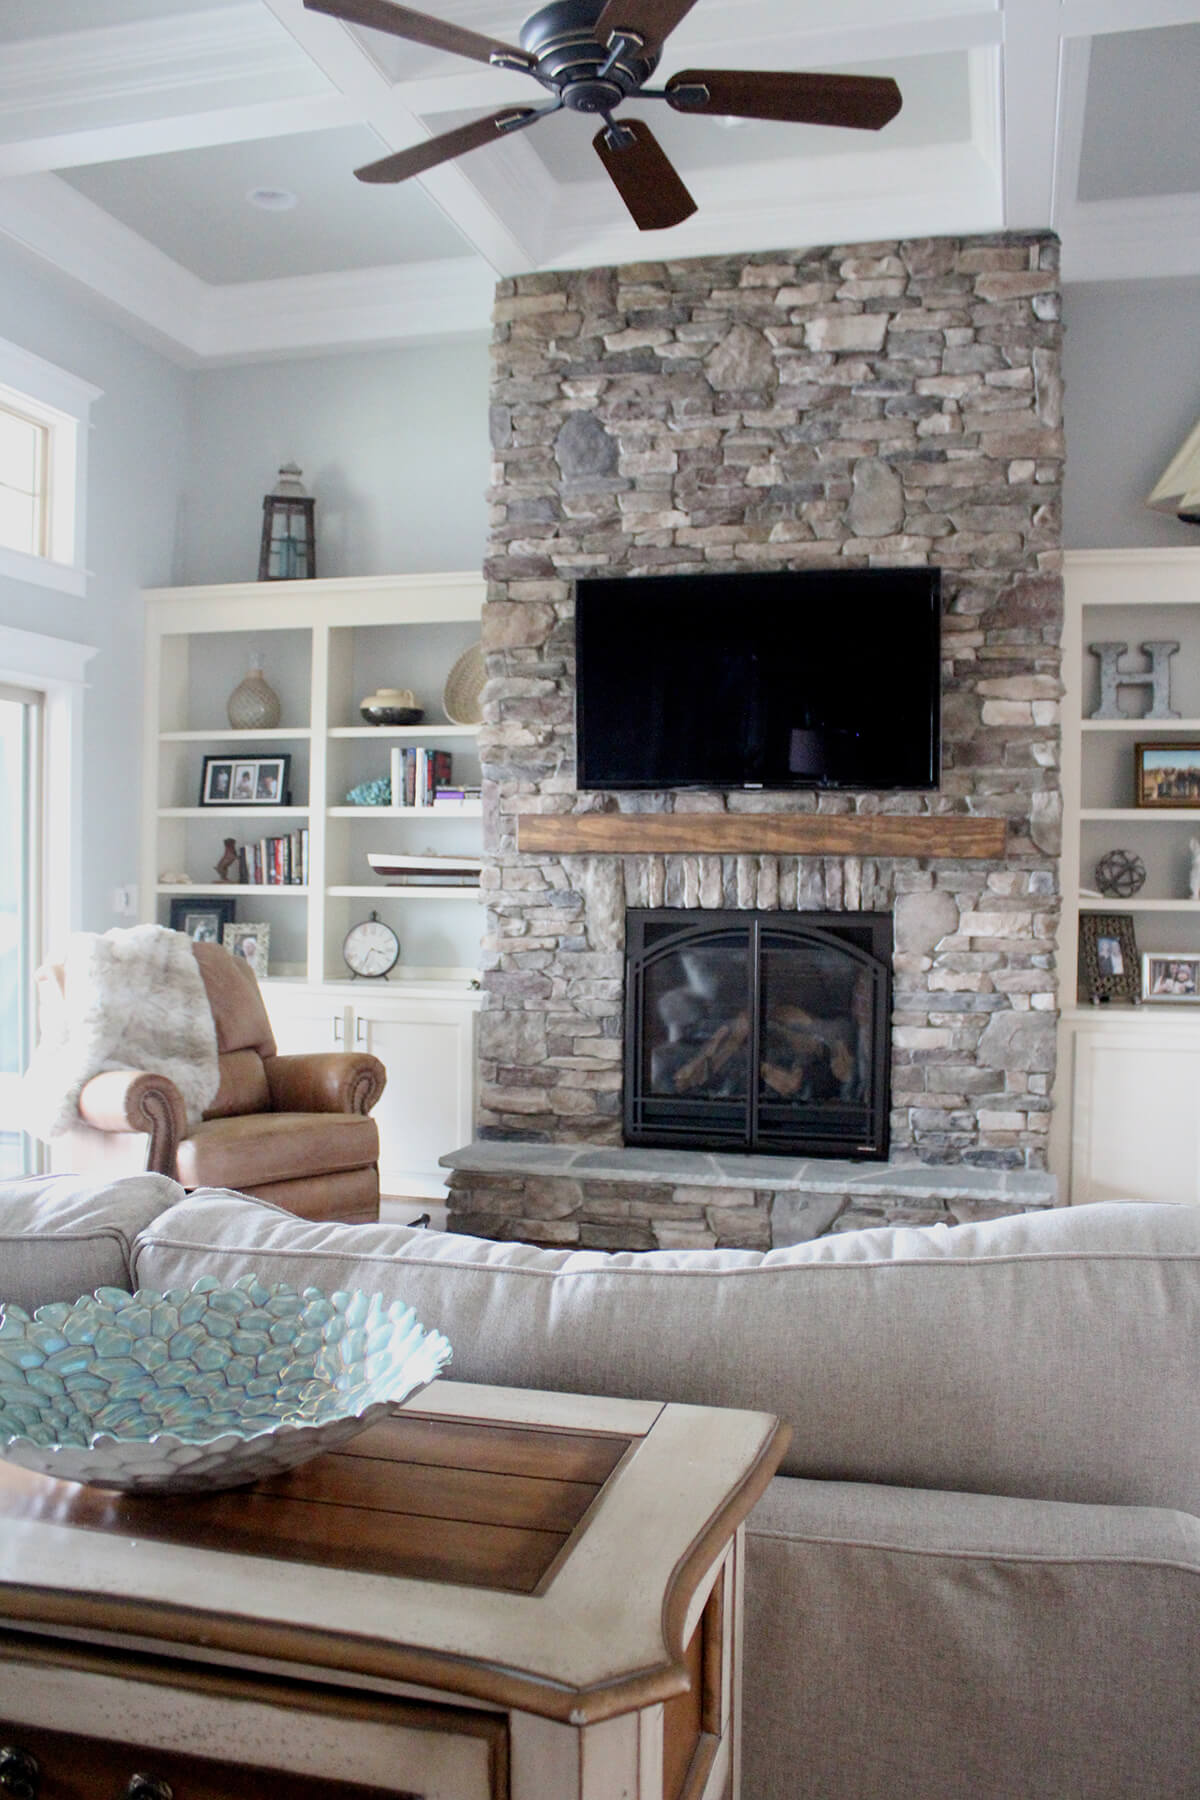 Impressive Rustic Stacked Stone Floor-to-Ceiling Fireplace